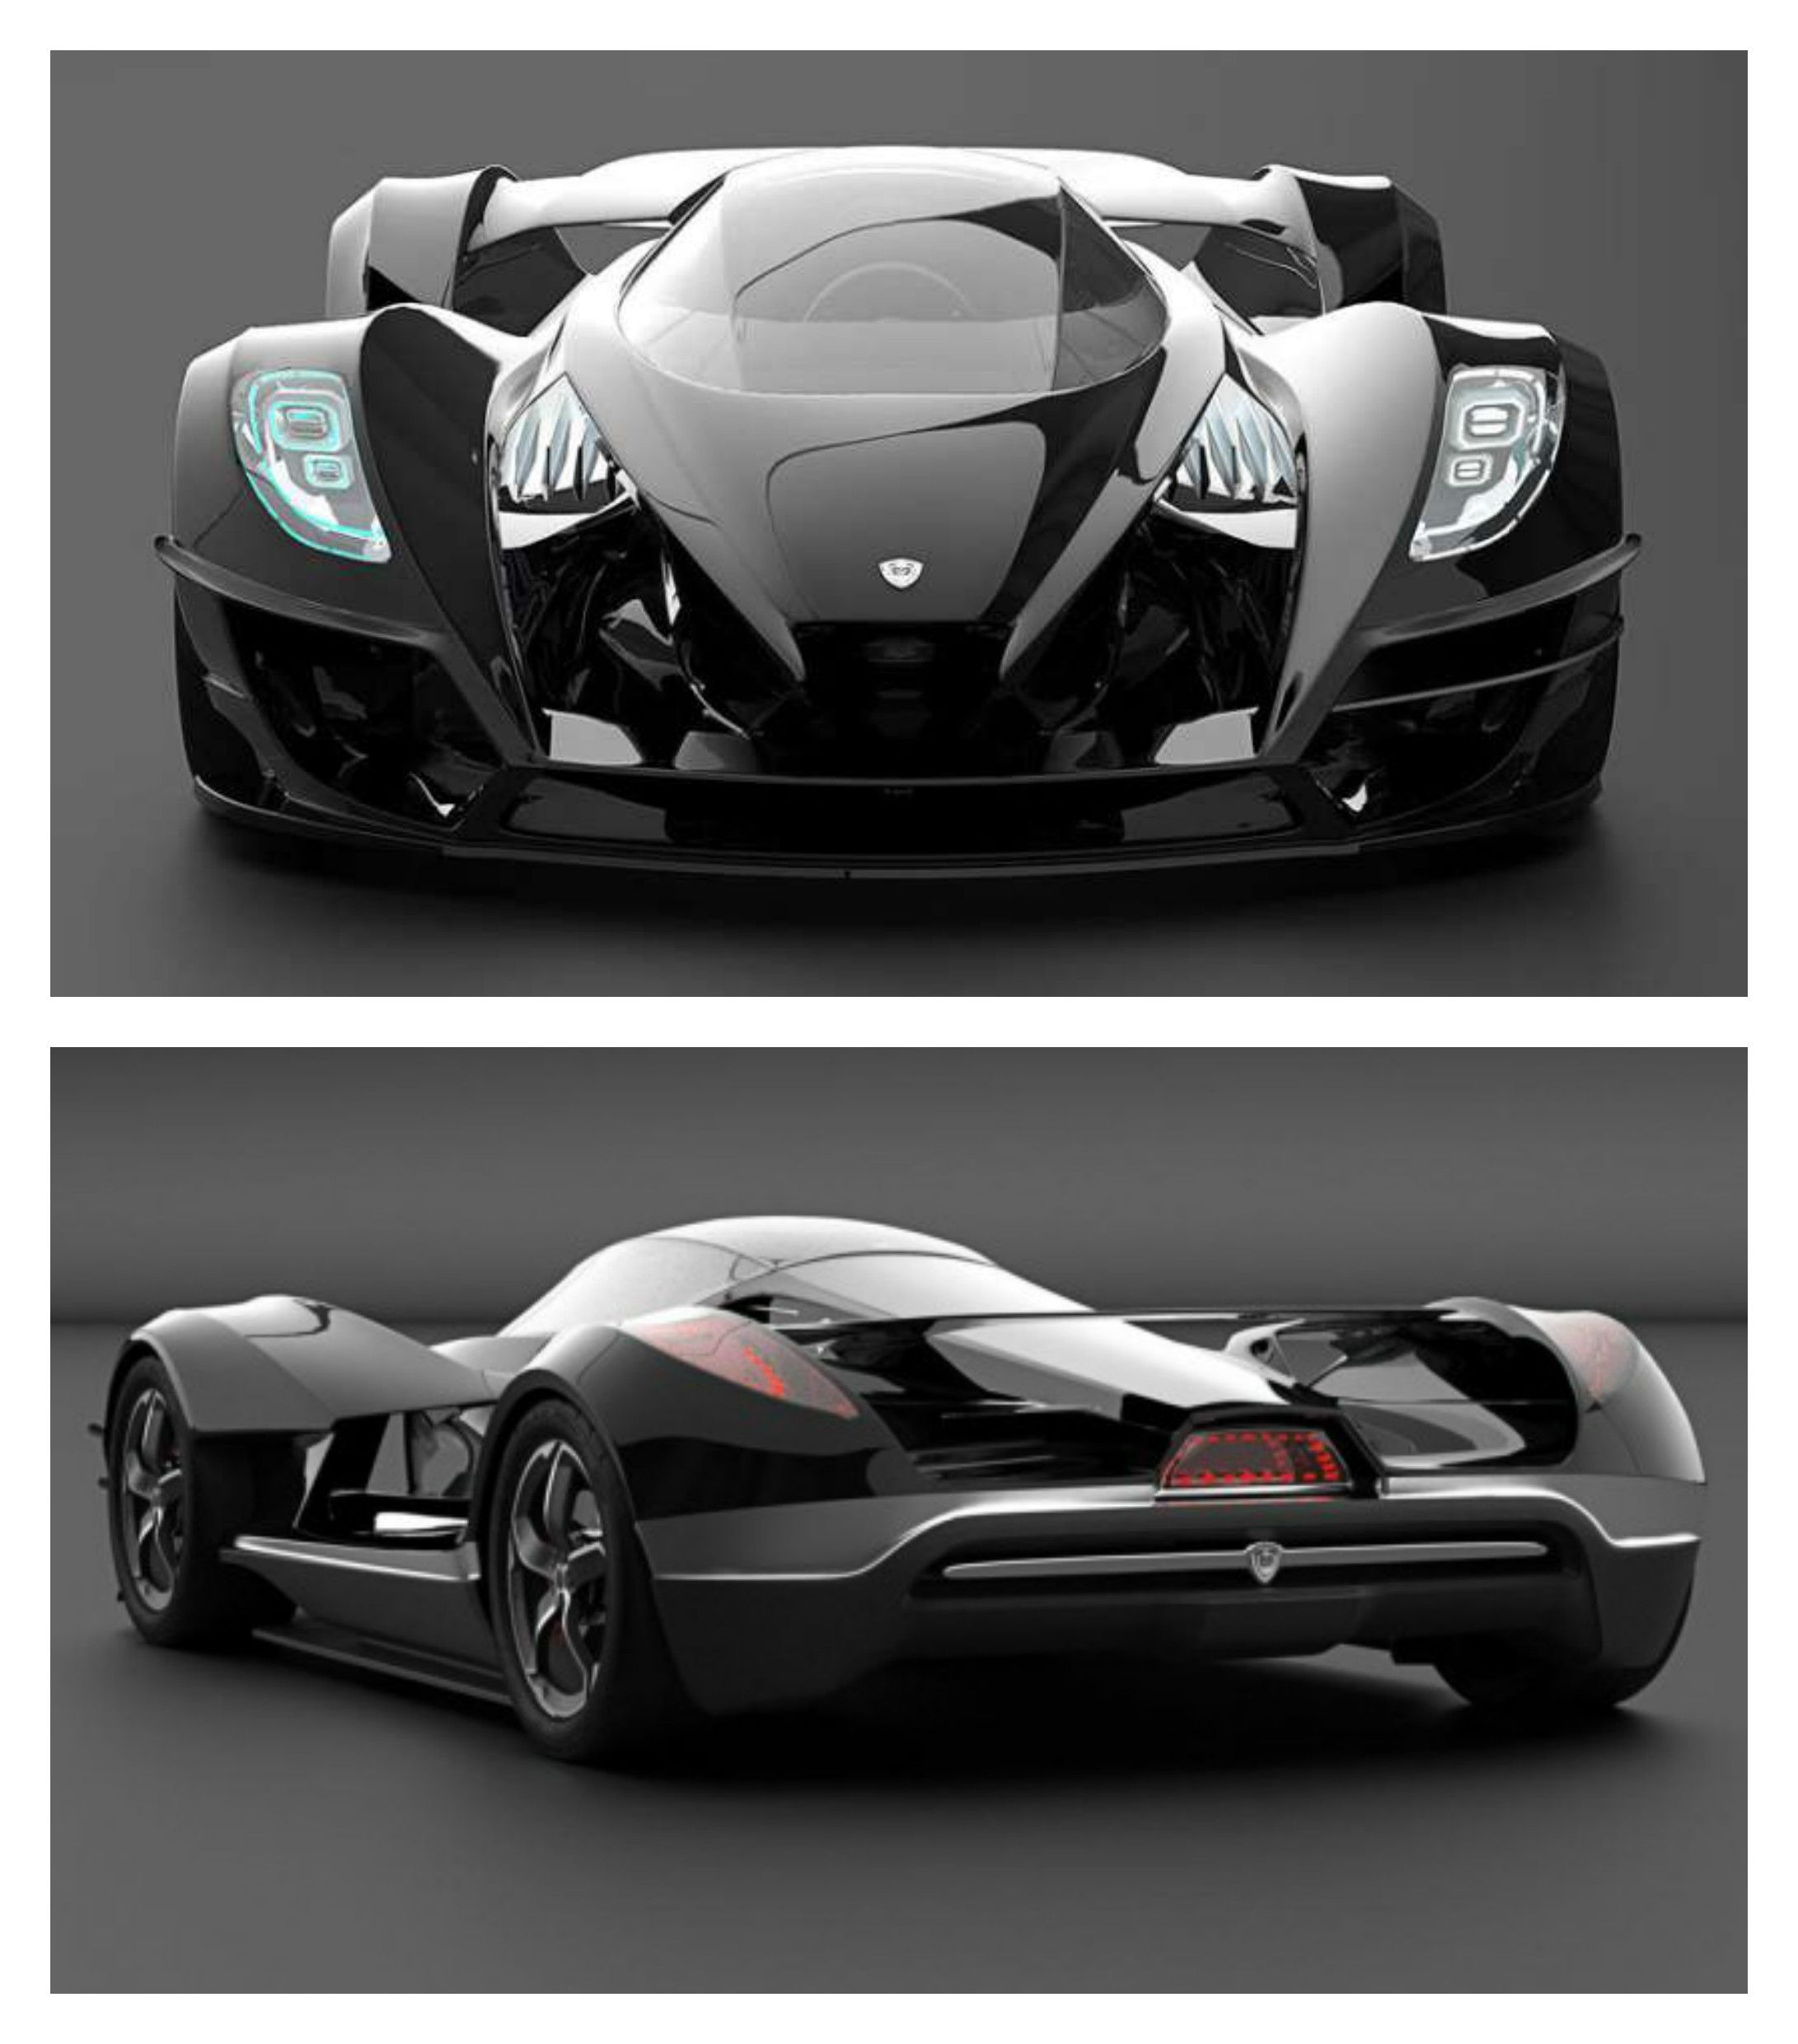 Pin By Rob N Foss On Zeus Sigma Super Cars Futuristic Cars Cool Cars